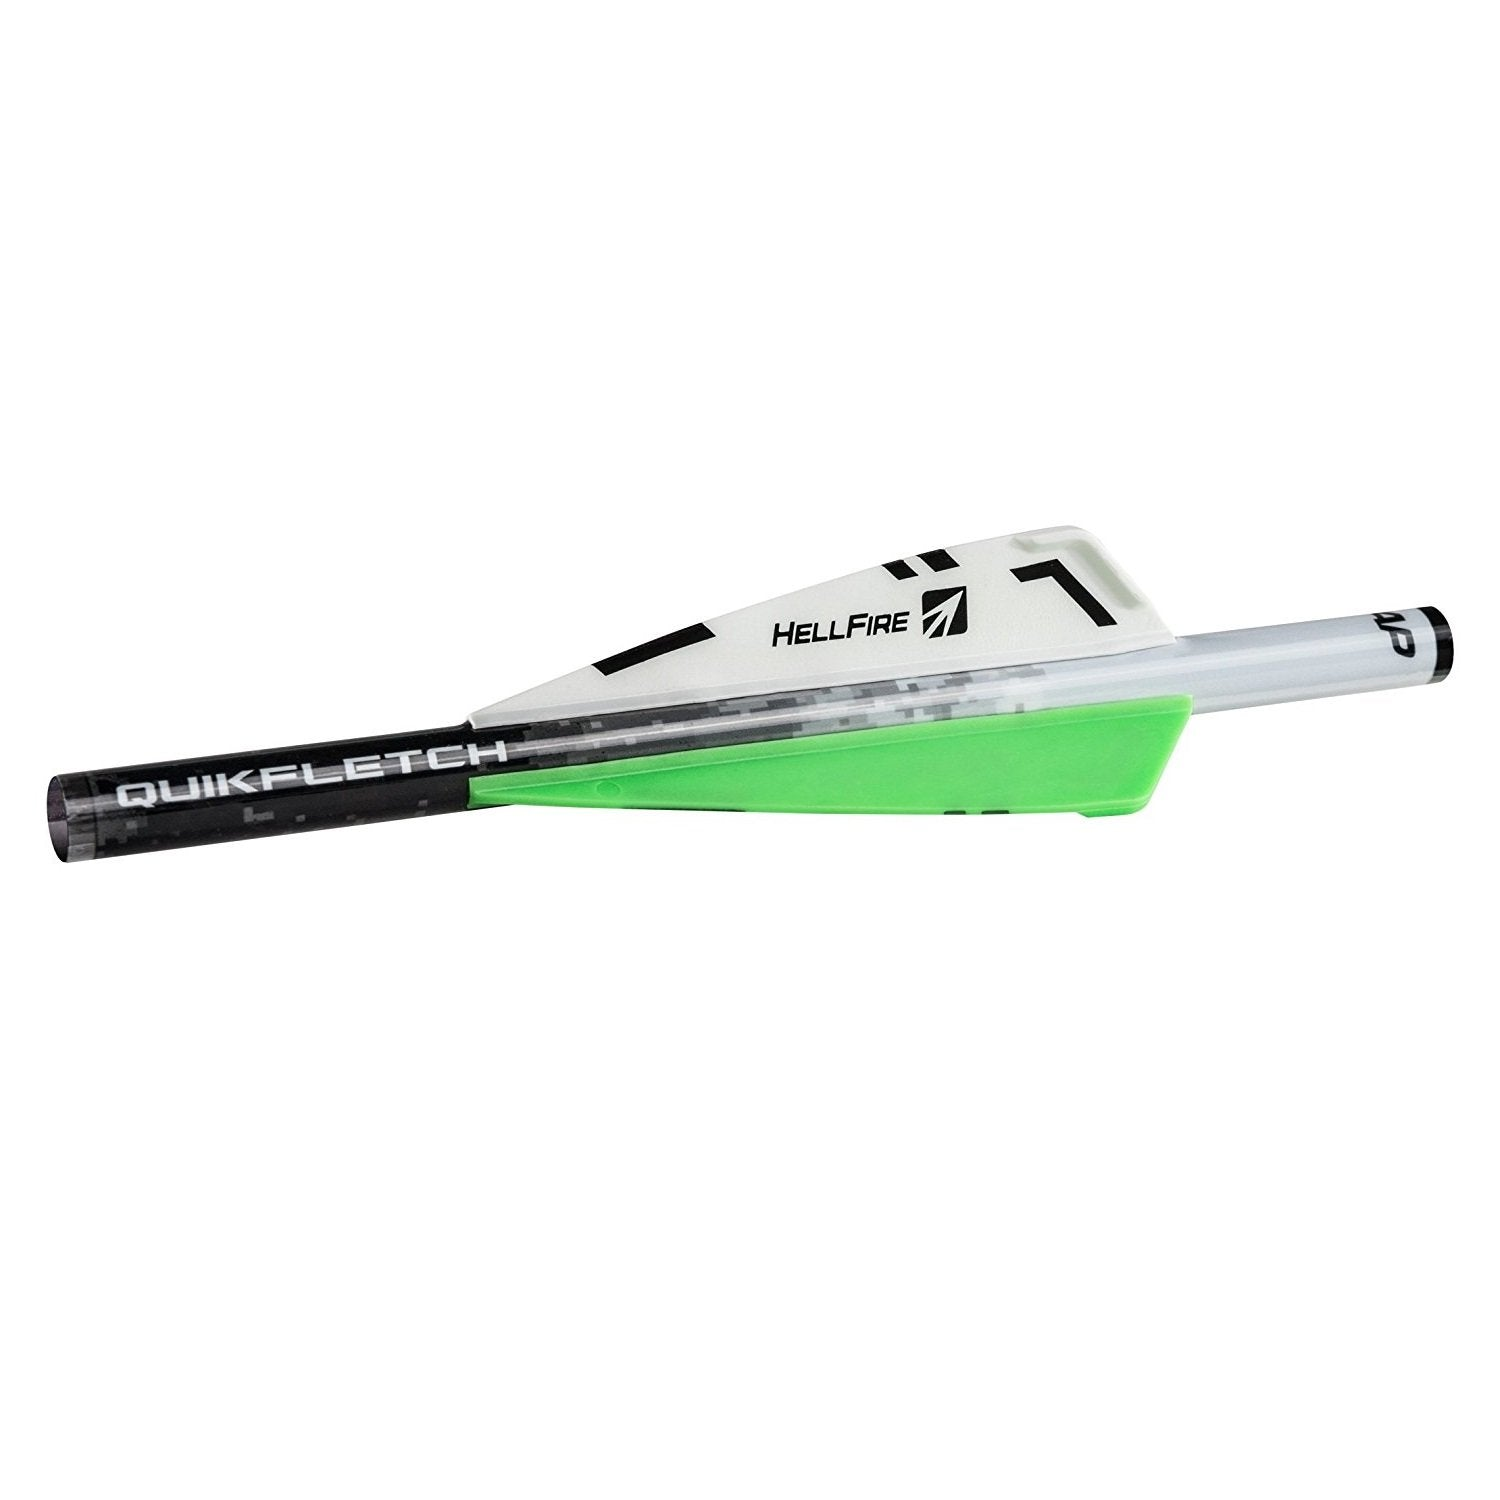 NAP Quikfletch 3in Hellfire Xbow - 6 Pack White/Green/Green